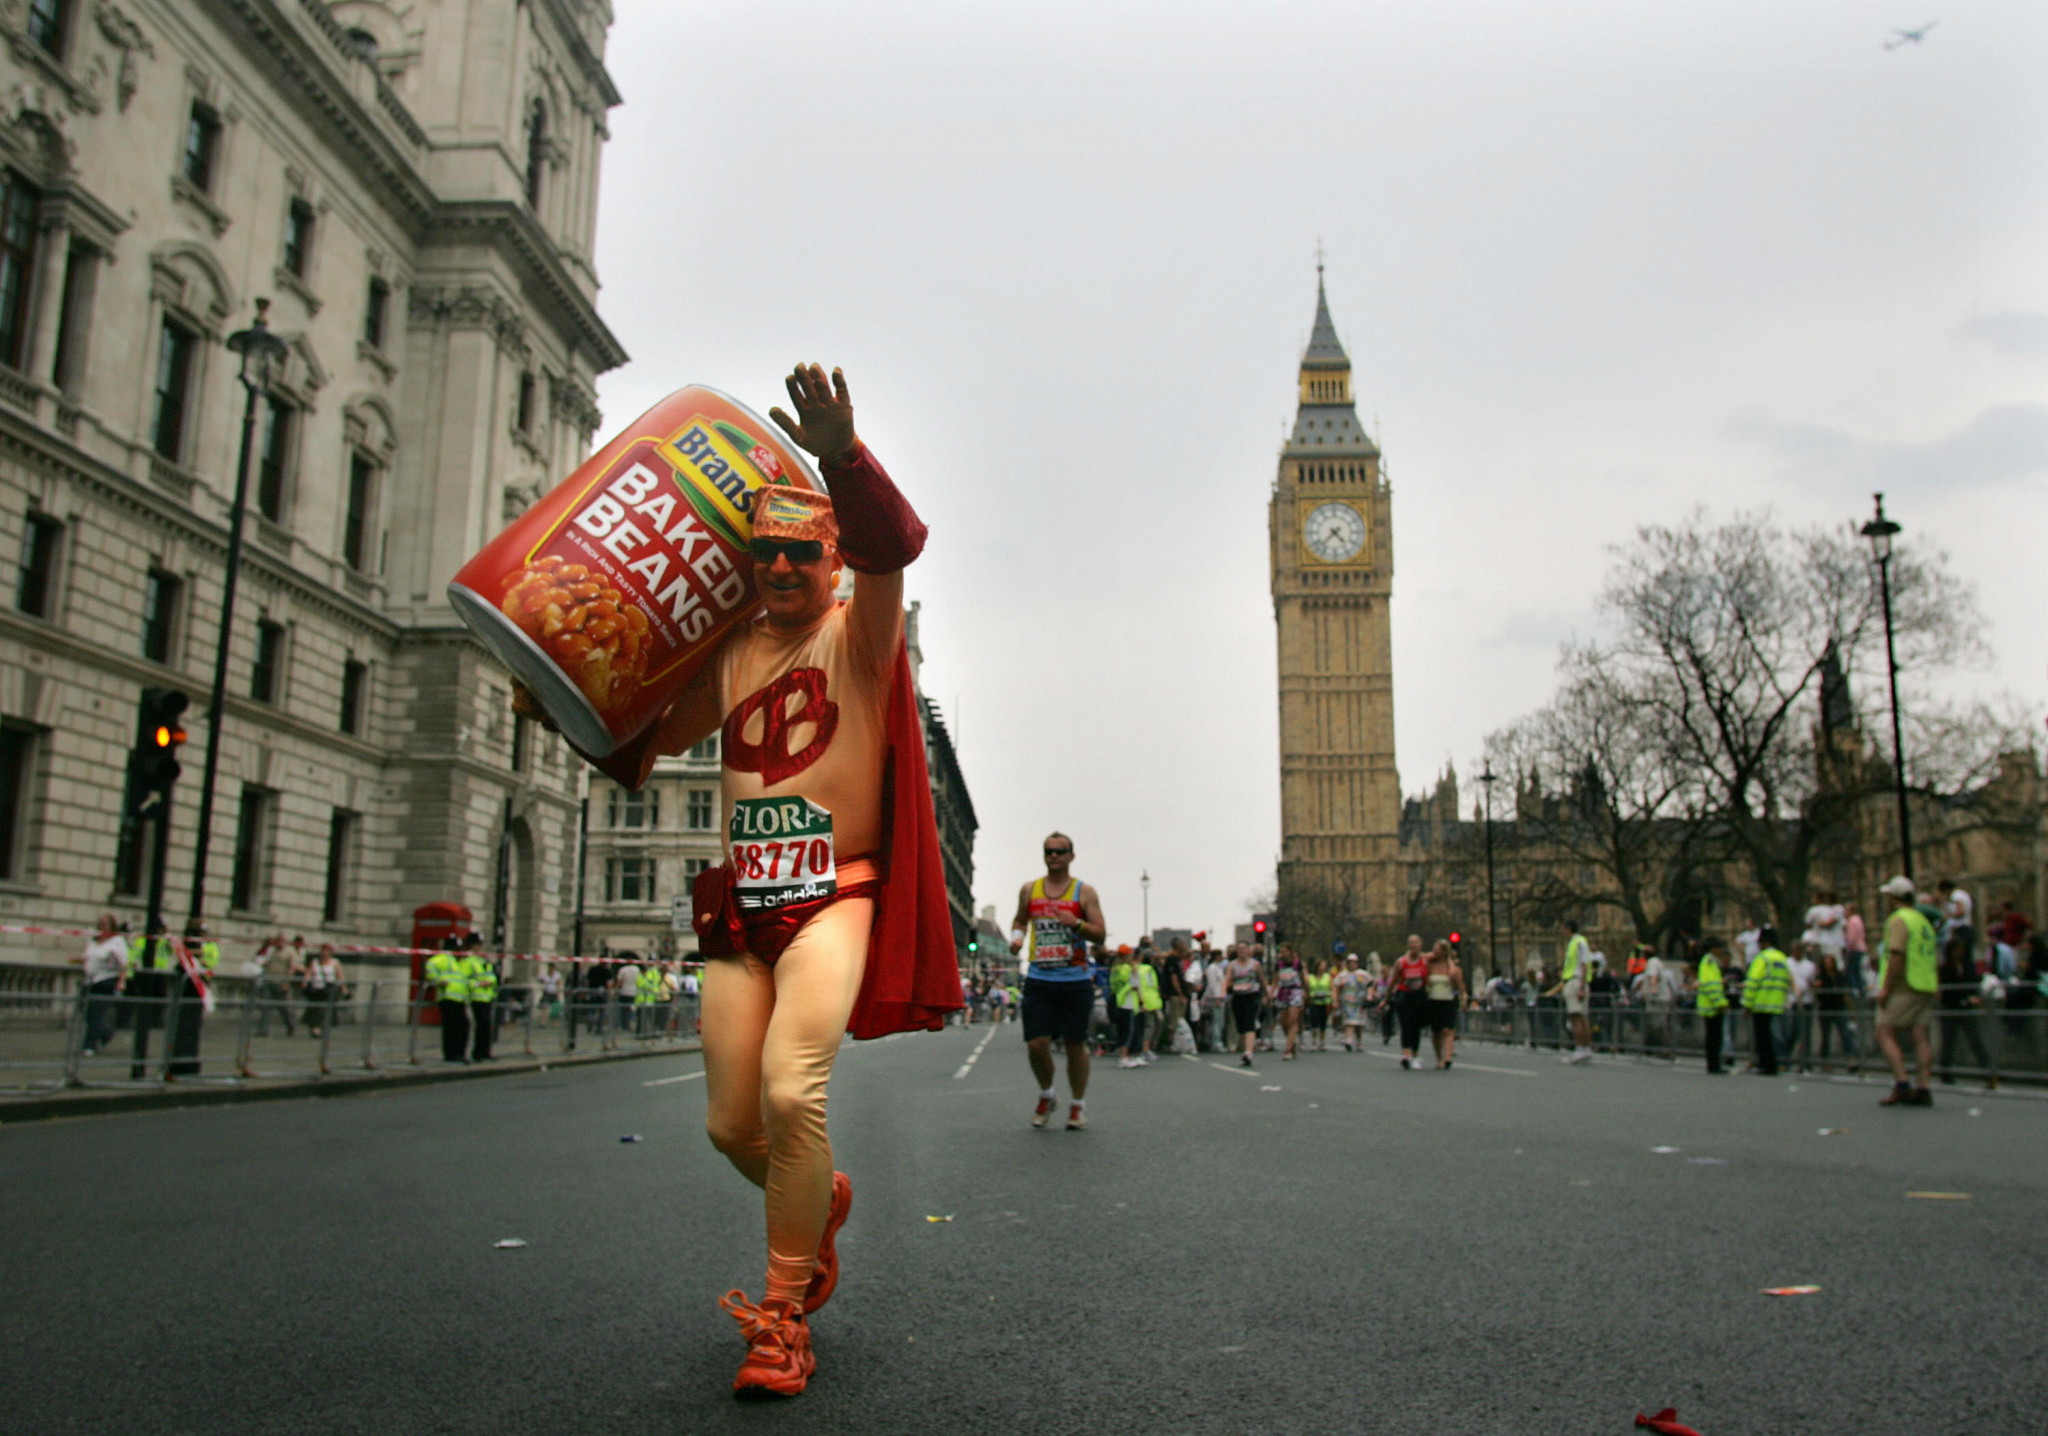 It is estimated that 75 per cent of the 40,000 runners who take part in the London Marathon raise money for charity ©Getty Images